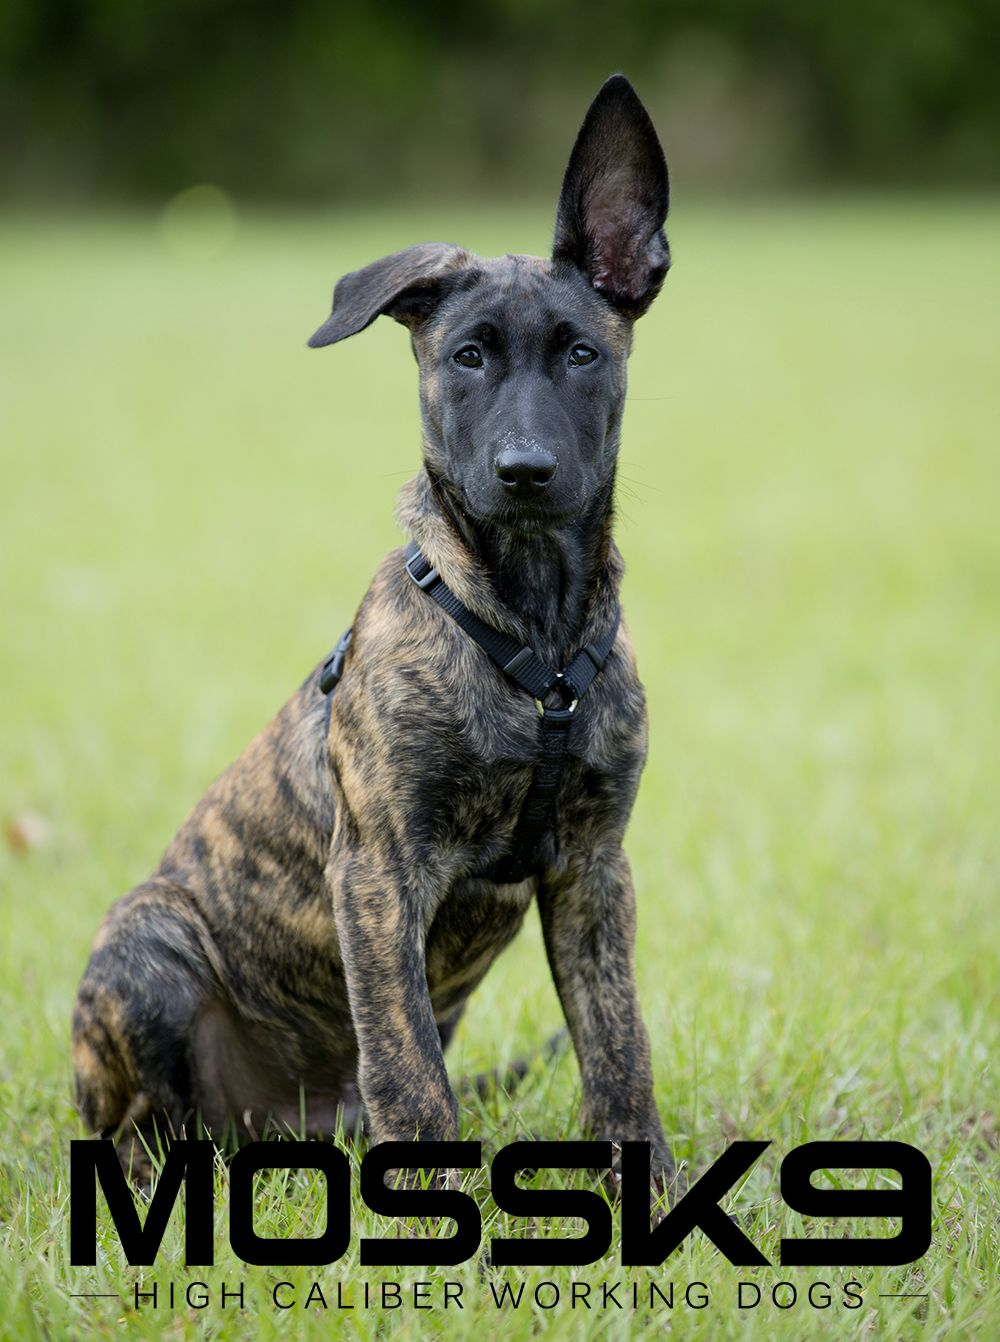 Knpv Dutch Shepherd Belgian Malinois Working Dog Puppy Moss K9 Cute Baby Animal Puppy Belgian Malinois Working Dogs Belgian Malinois Dog